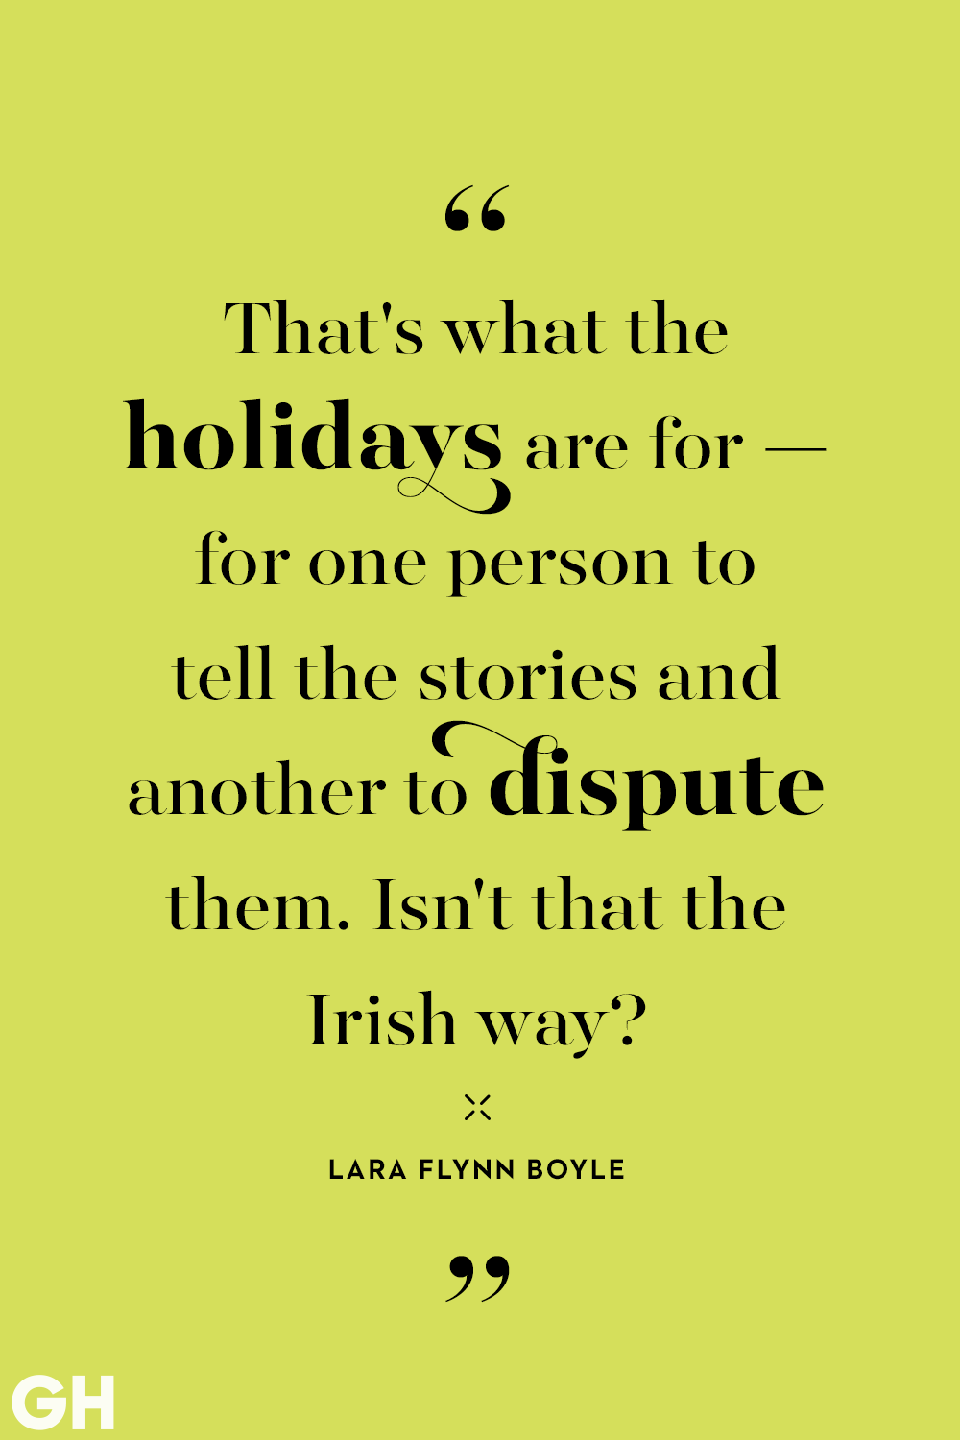 <p>That's what the holidays are for — for one person to tell the stories and another to dispute them. Isn't that the Irish way? </p>